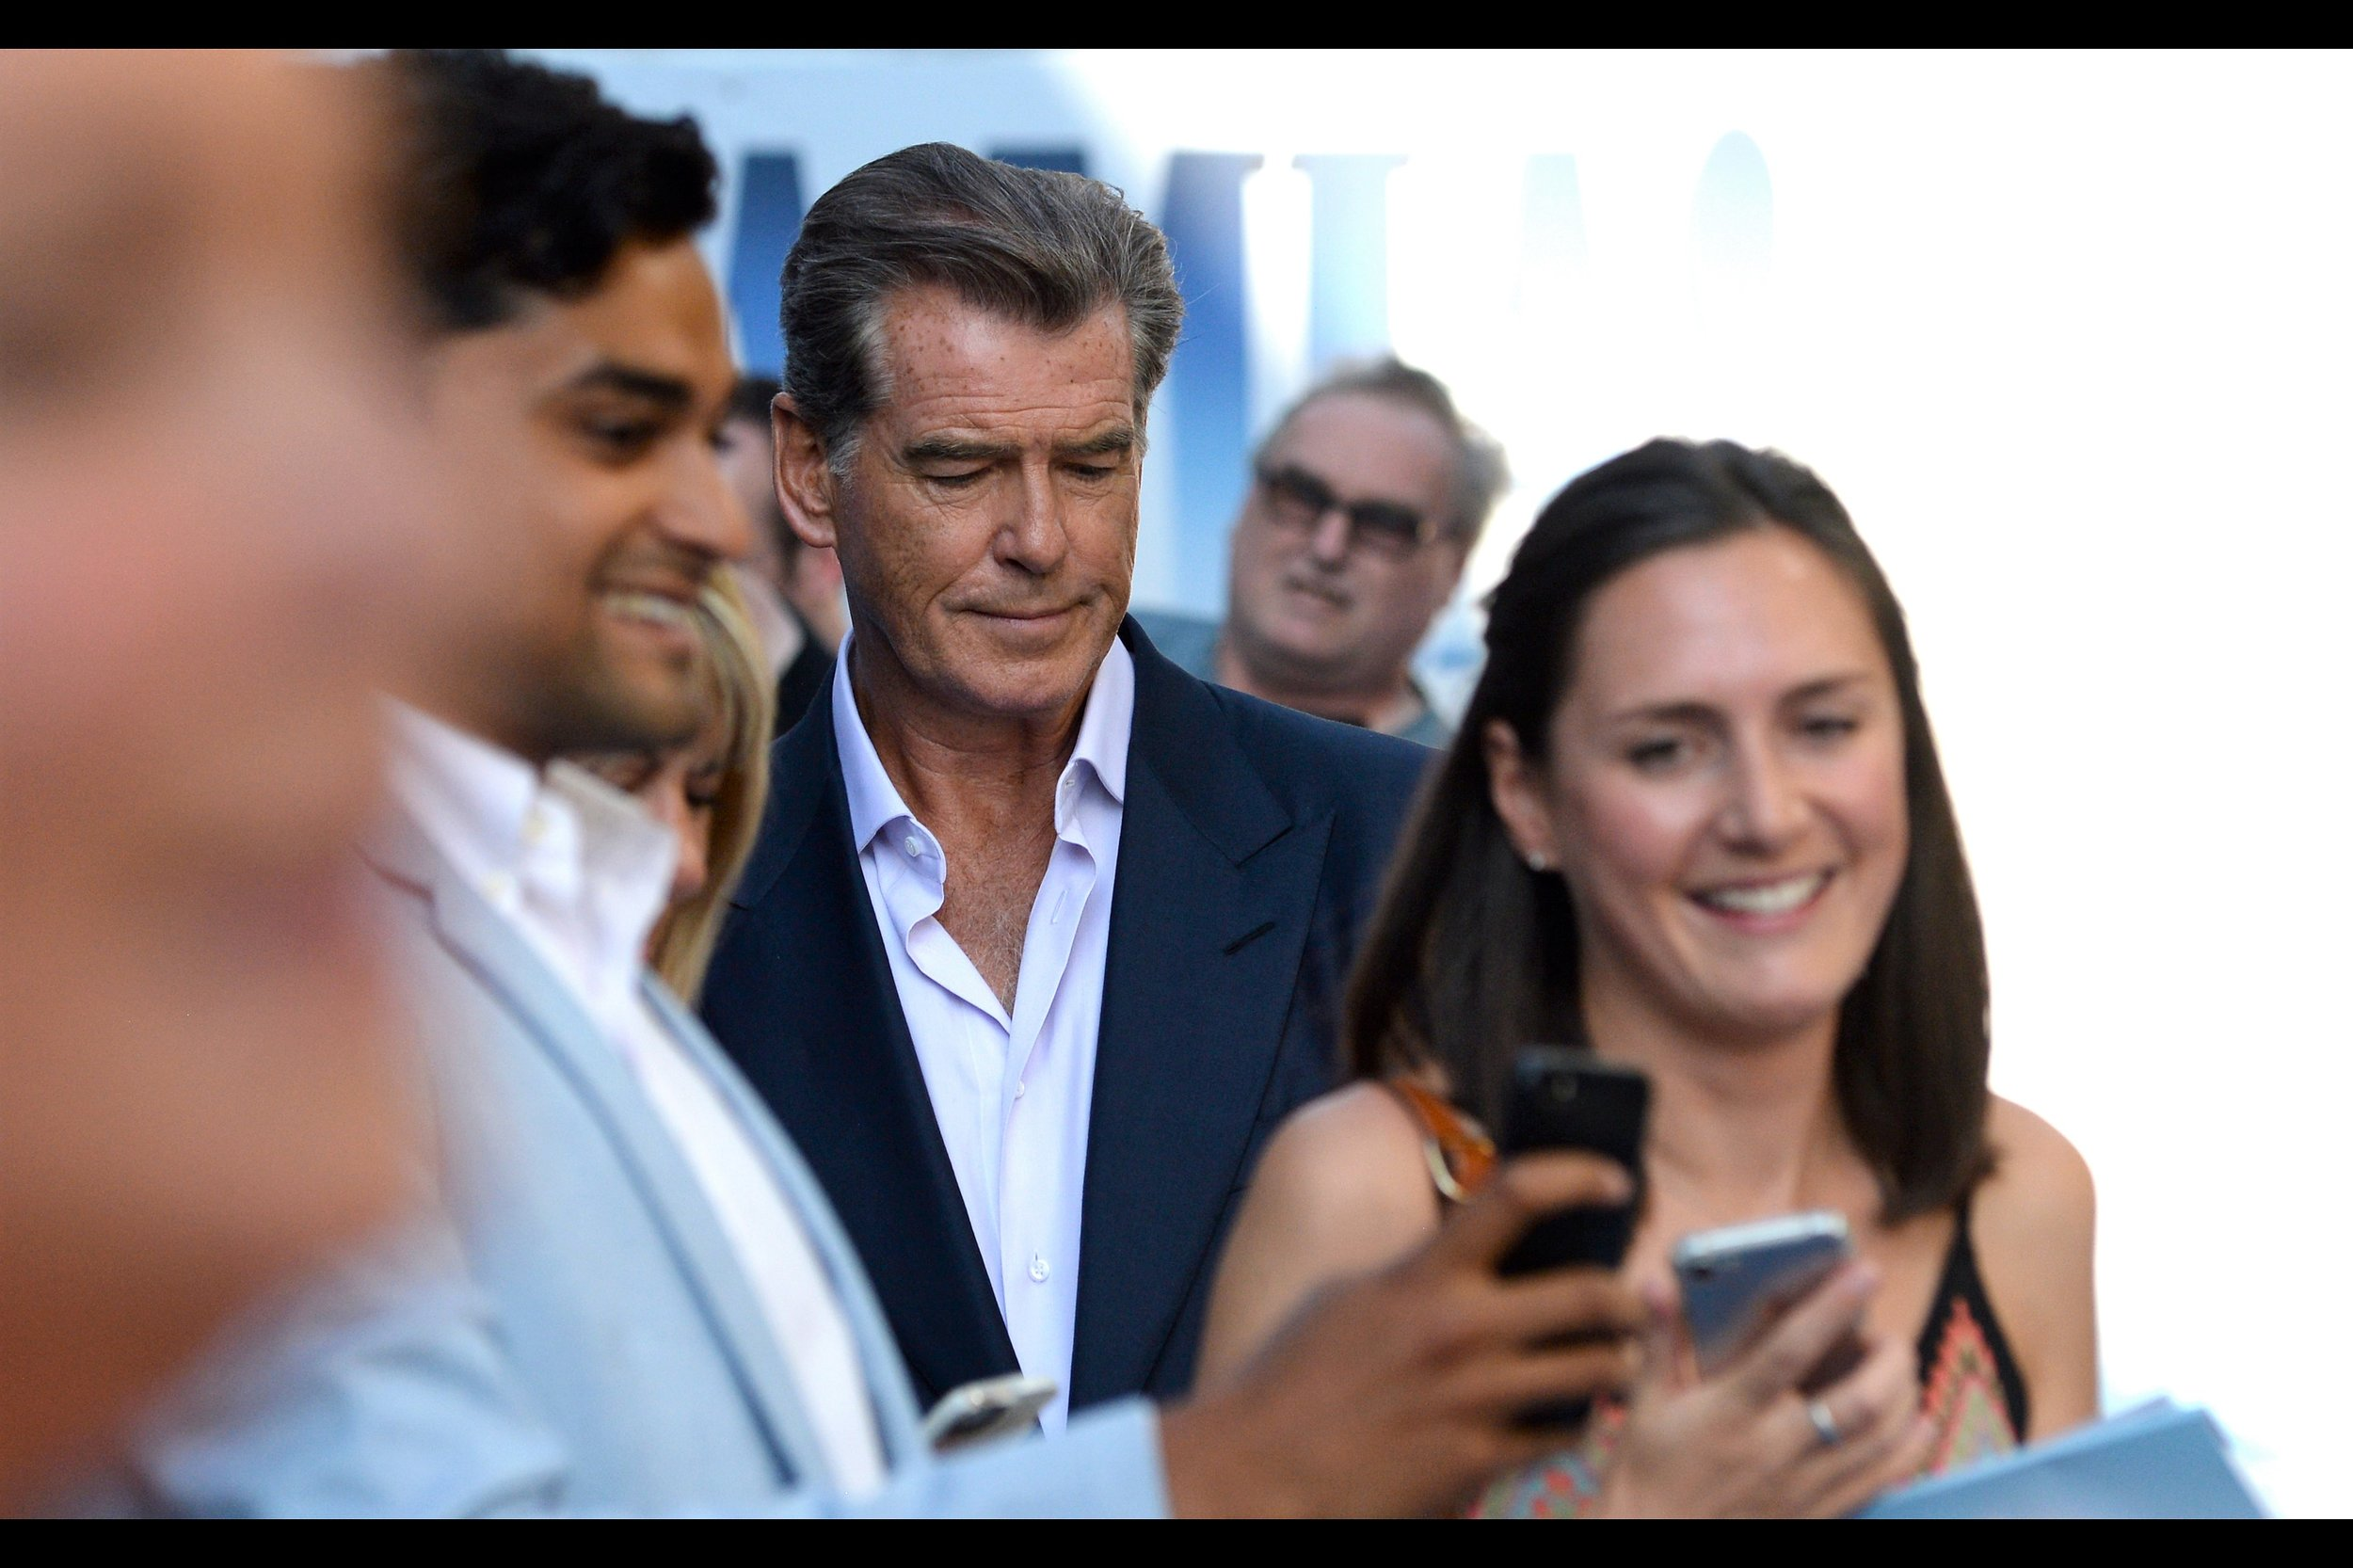 Pierce Brosnan played James Bond in Goldeneye, Tomorrow Never Dies, The World Is Not Enough, and Die Another Day.... but without seeing around to the other pen behind the media wall, I'm sure the dealers mostly wanted him to sign Dante's Peak merch. Those Volcano movies were big in the late 1990s...